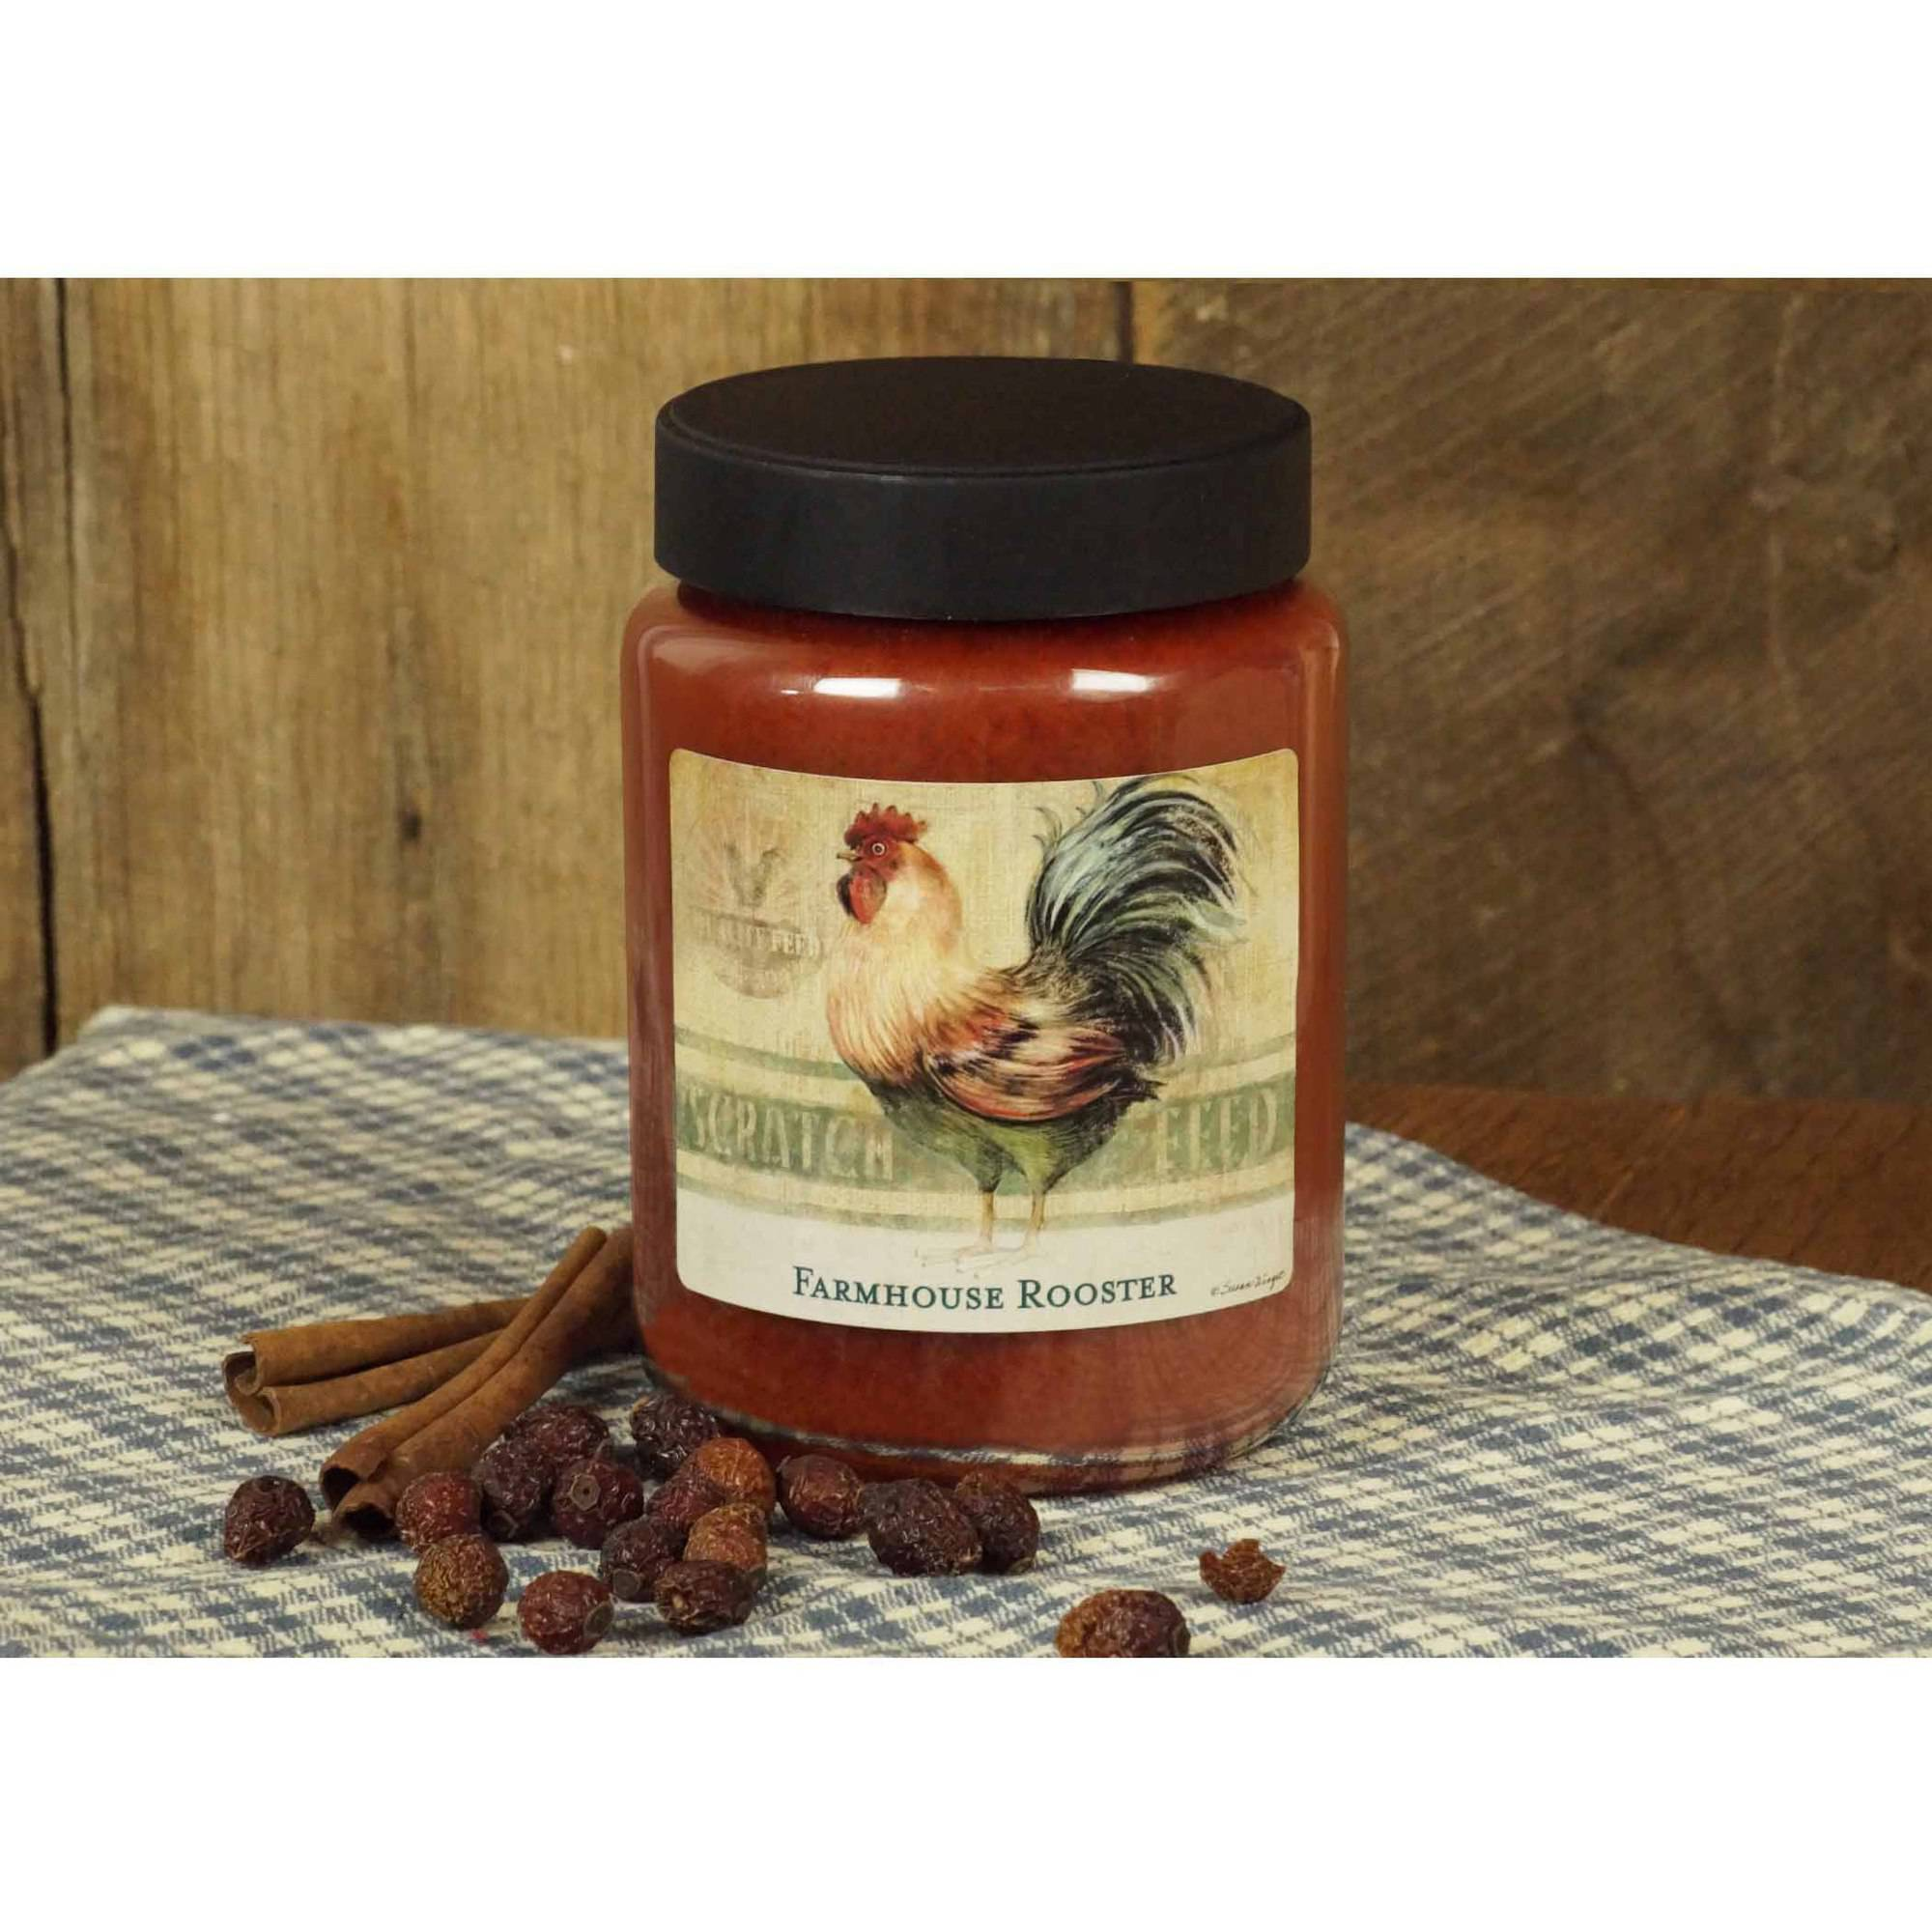 LANG Farmhouse Rooster 26-Ounce Jar Candle, Scented with Buttered Maple Syrup, Pumpkin Spice and Orange Clove